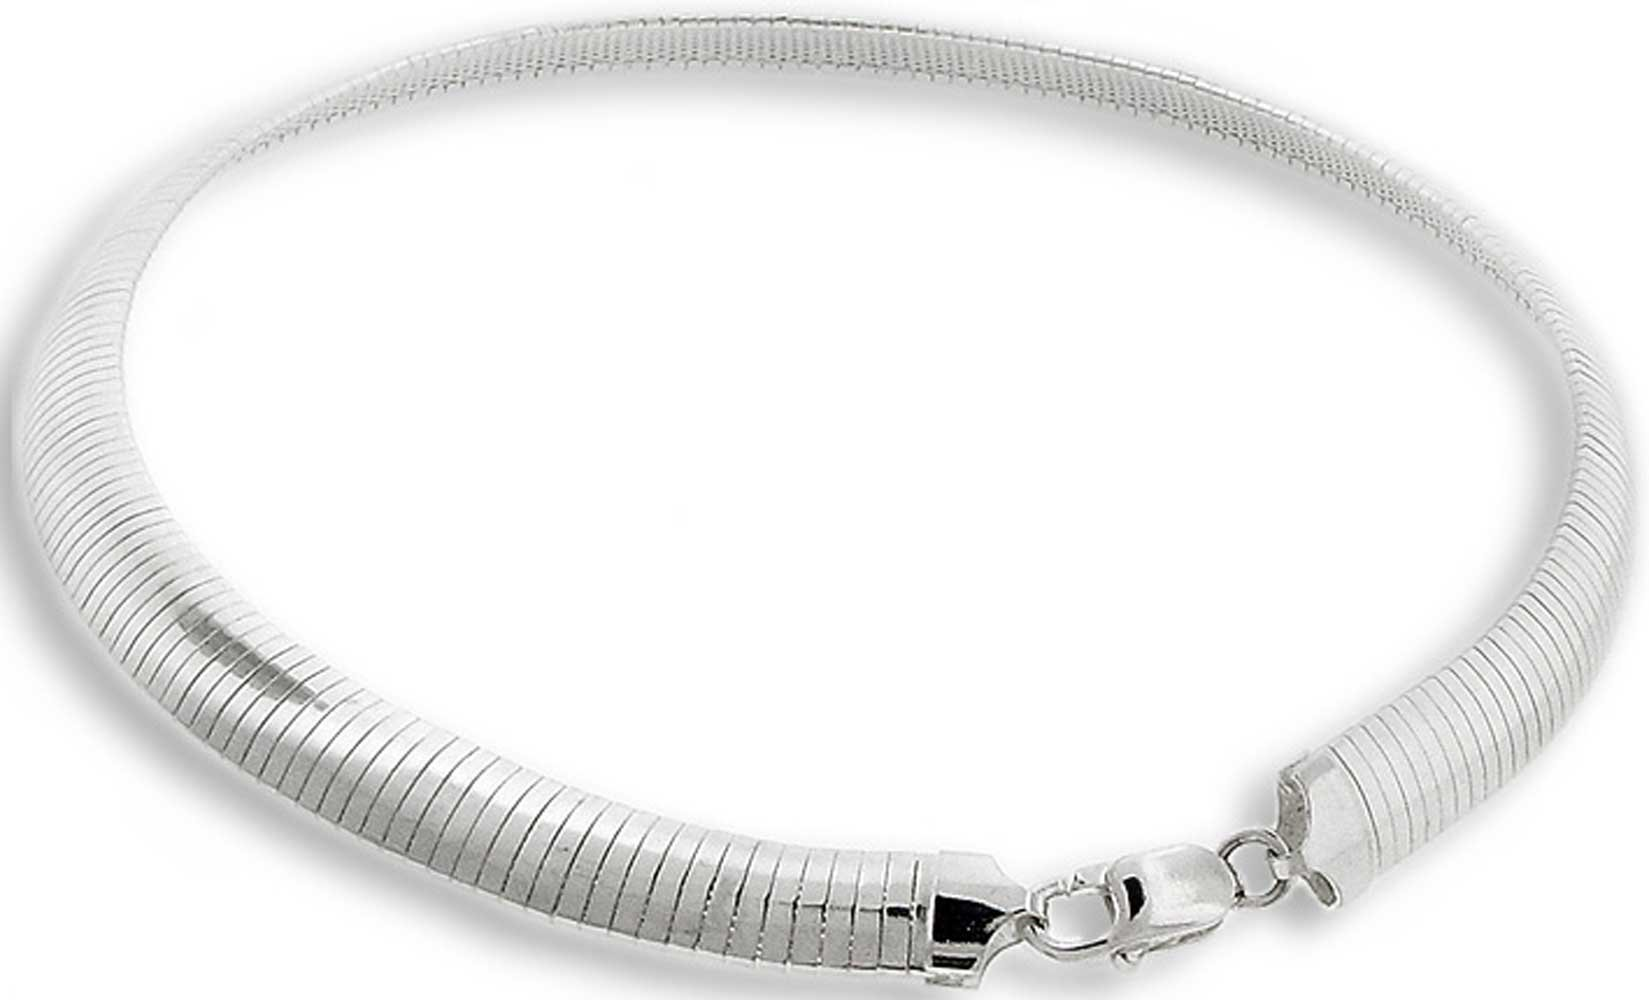 10mm Italian .925 Sterling Silver FLAT DOME Omega Chain Necklace Nickel Free 16in, 18in & 20inIncludes FREE Polishing & Cleaning Cloth (.925 Italian Sterling Silver, 18 Inches)